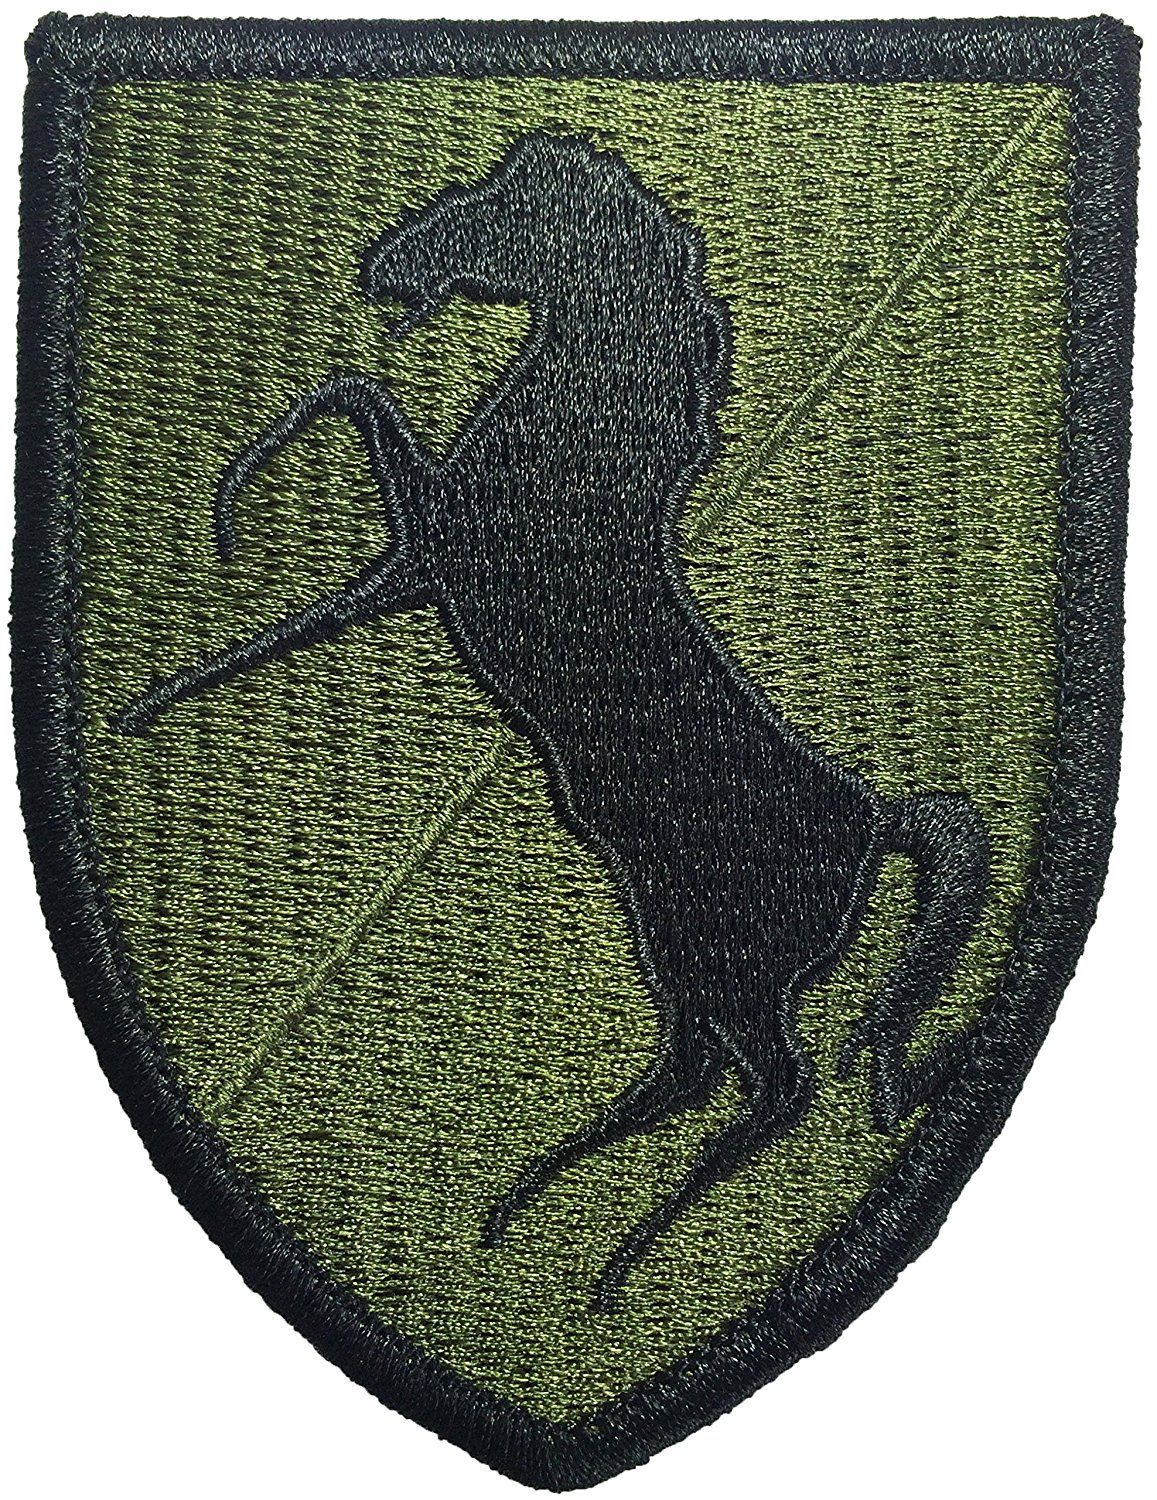 NEW EMBROIDERY SEW//IRON ON  11th A.C.R Black Horse Patch